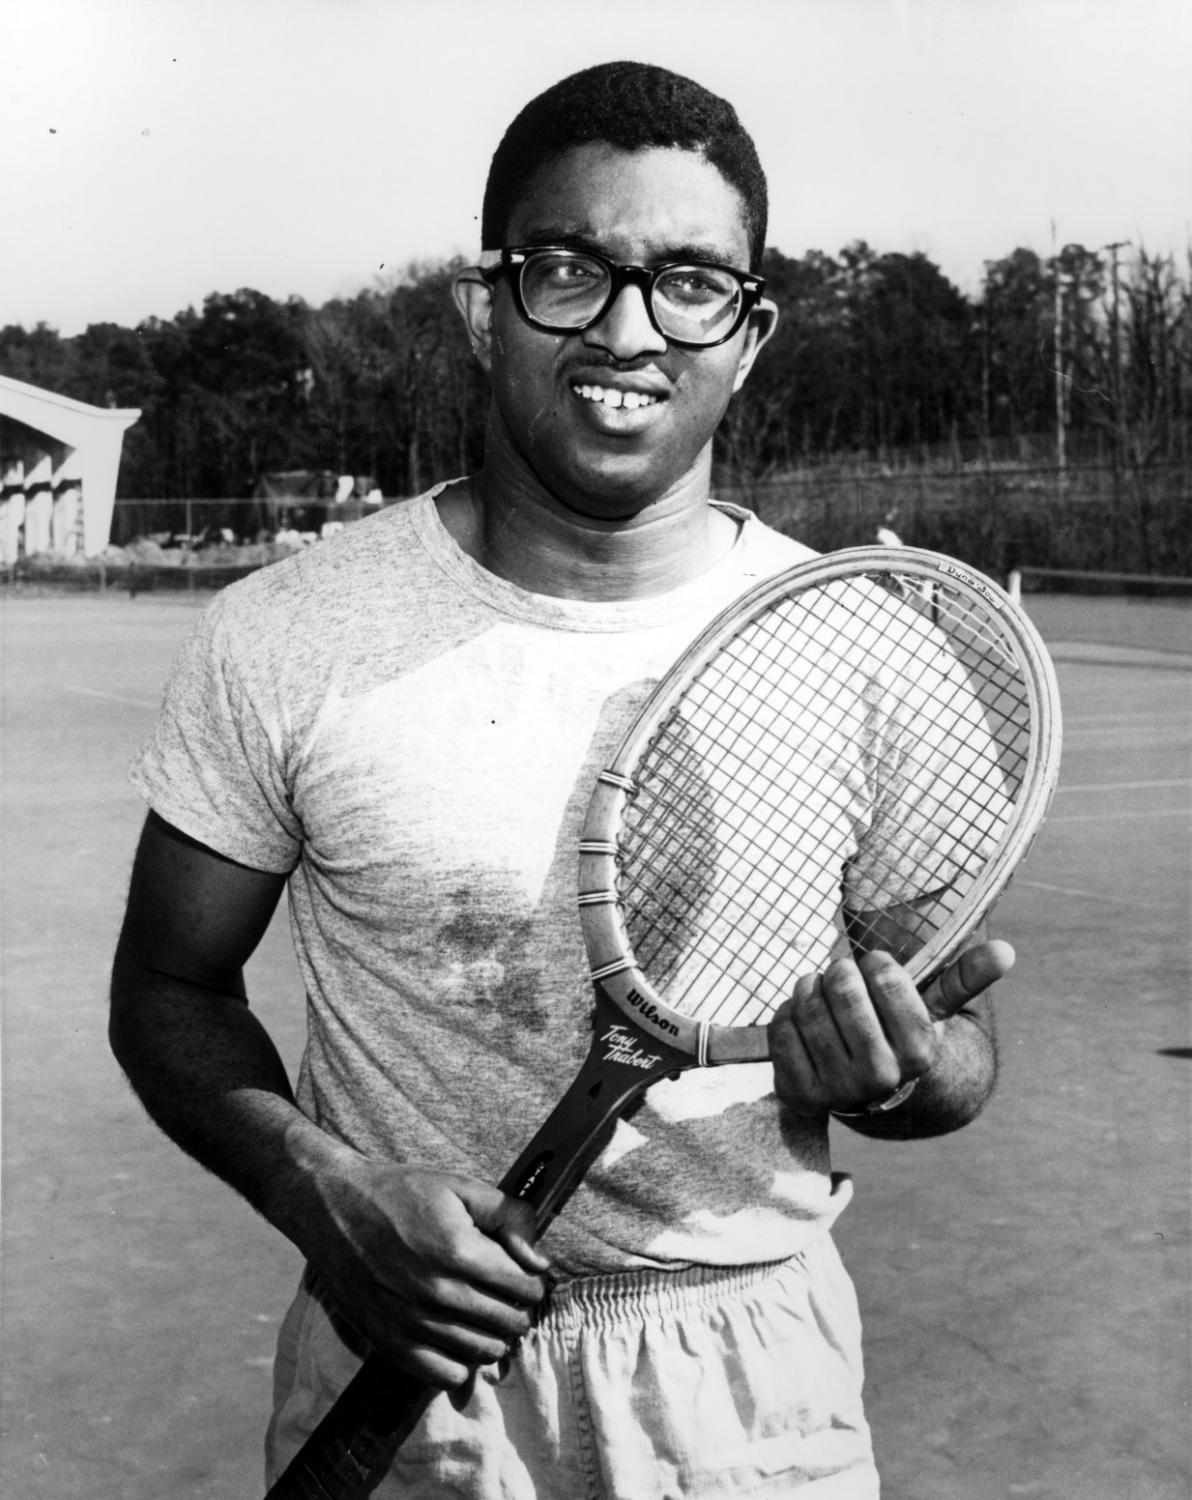 Irwin Holmes on NC State tennis court, 1957.